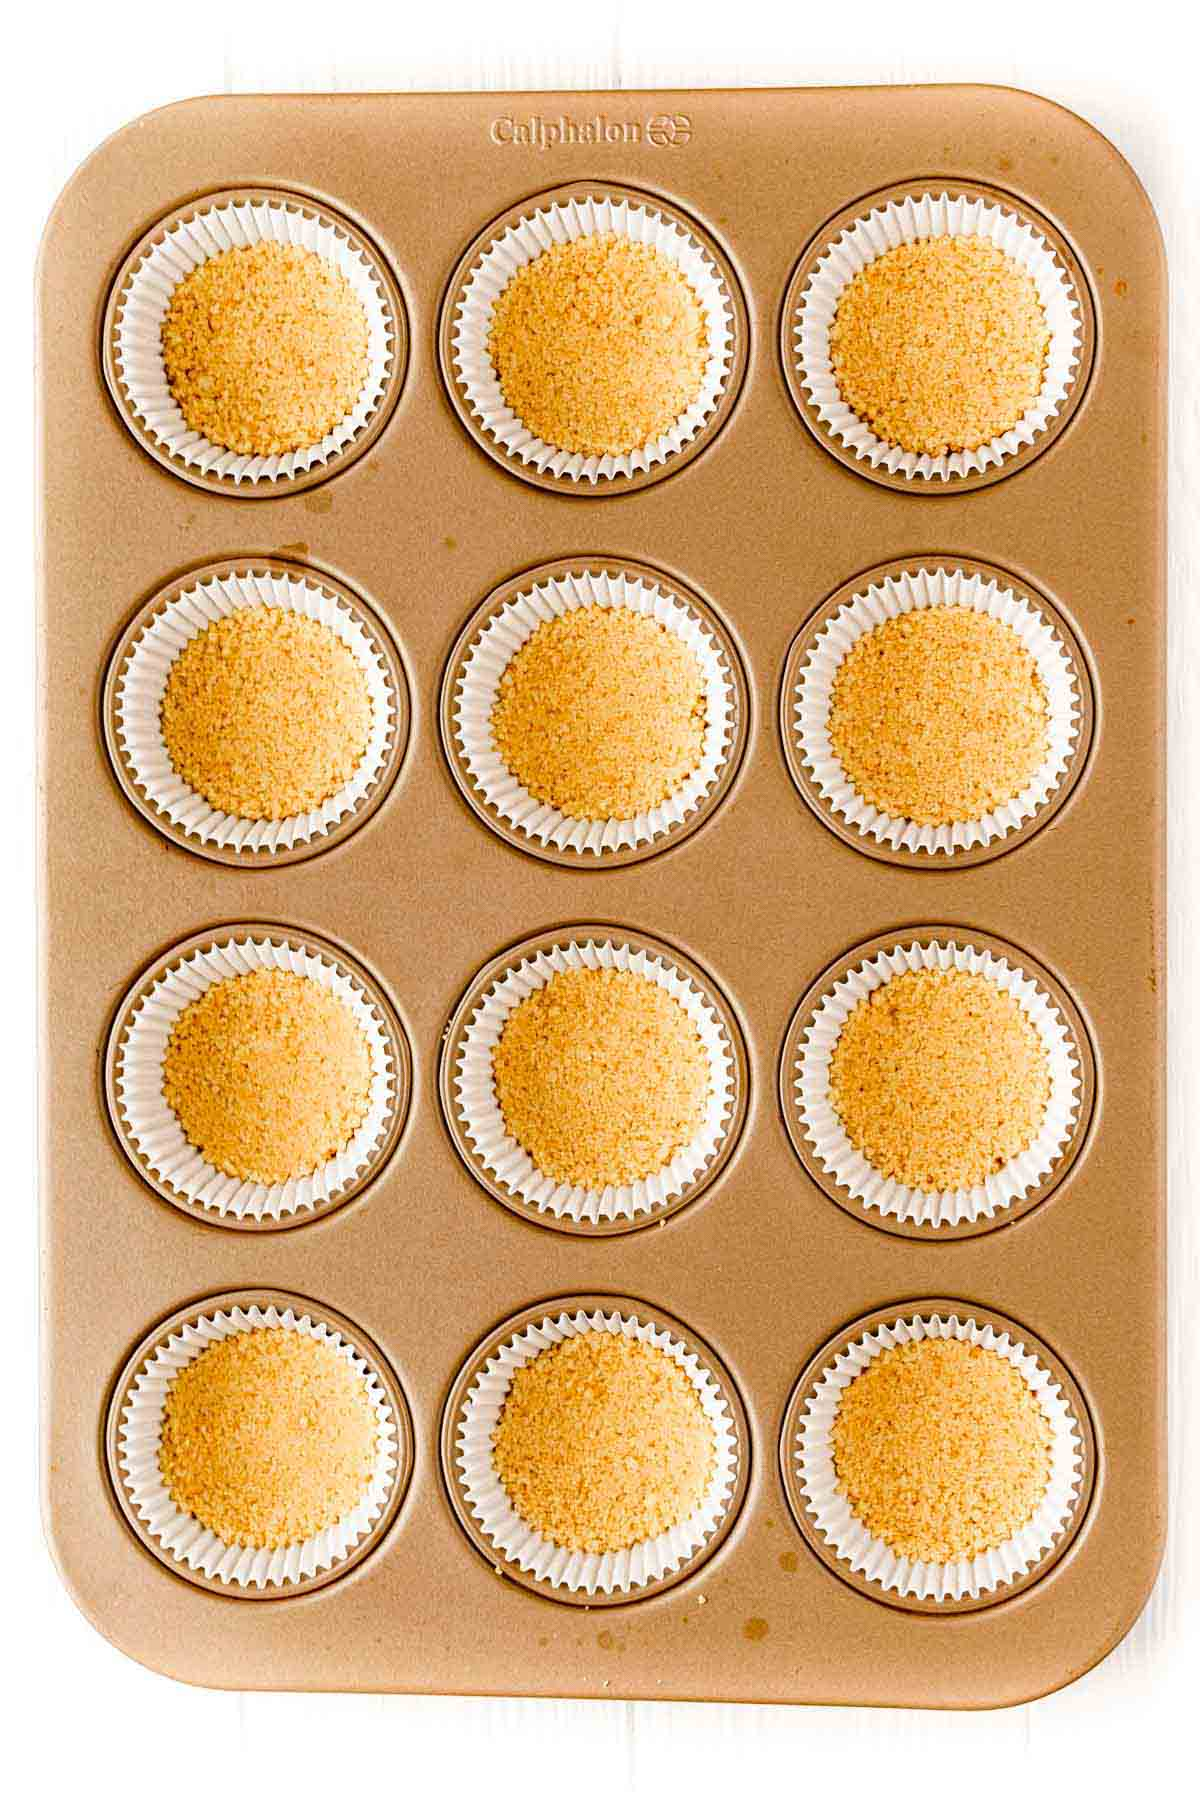 shortbread crust for mini egg cheesecakes in a muffin tin